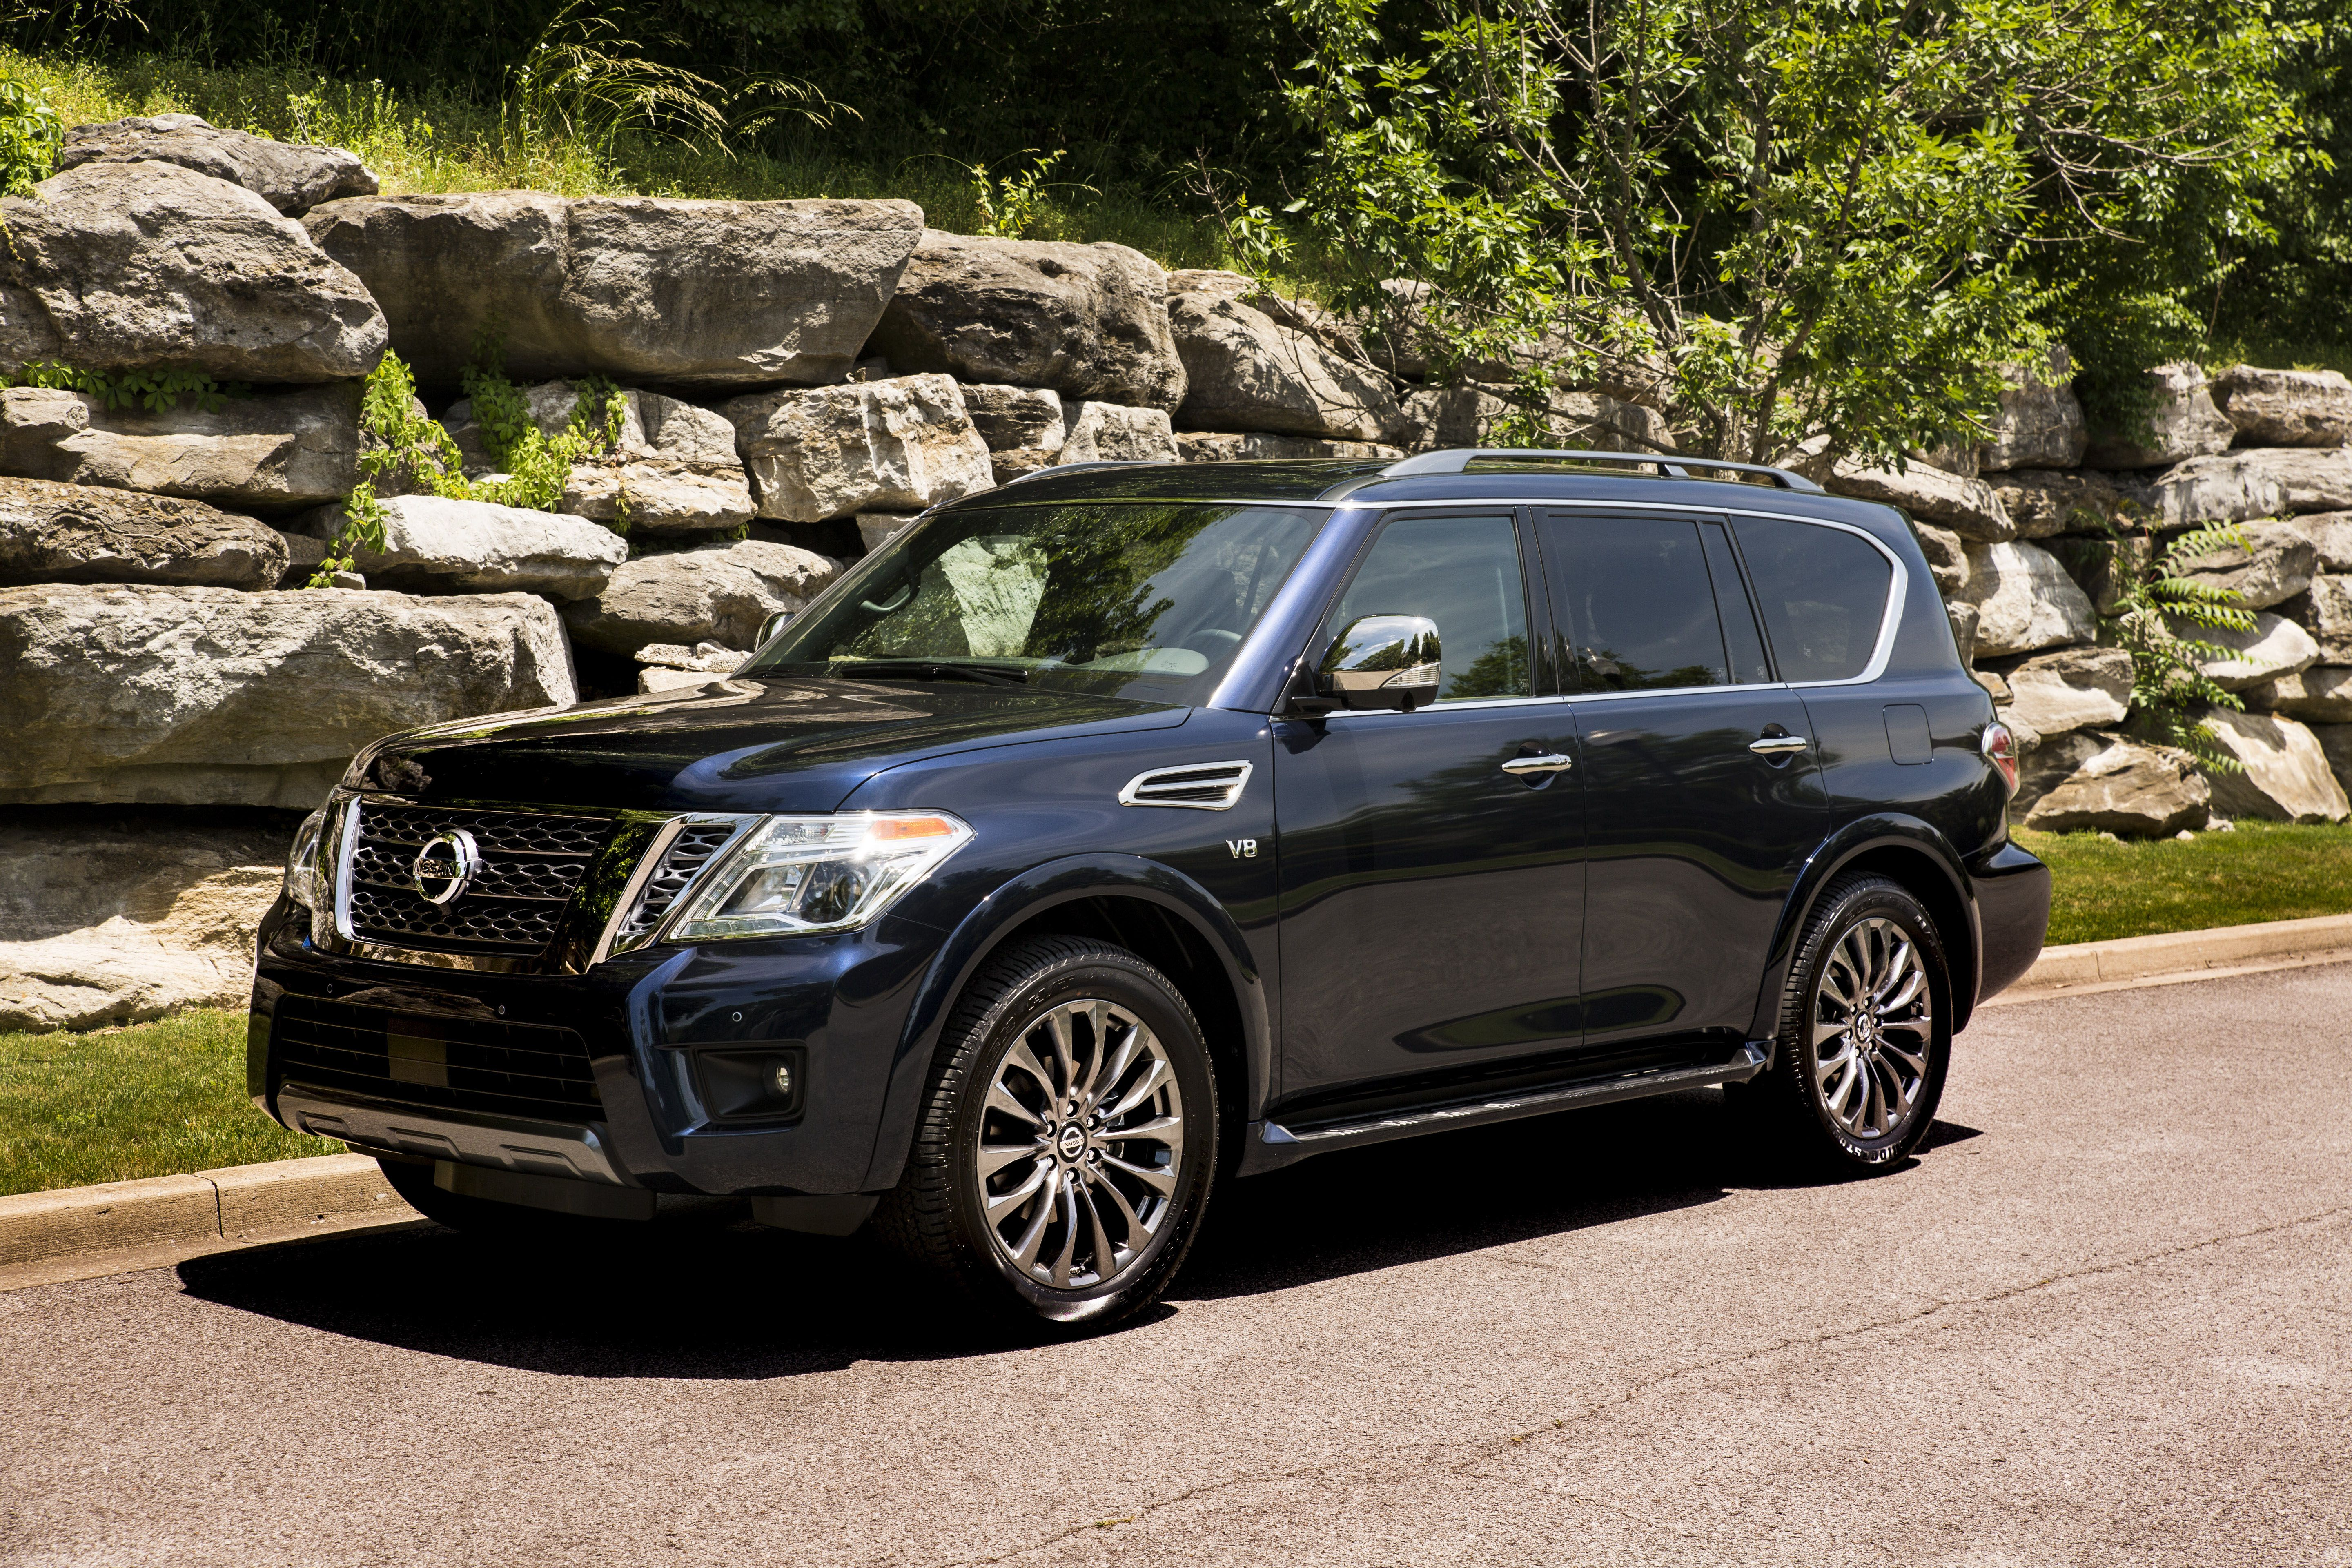 2020 Nissan Armada Review Pricing And Specs